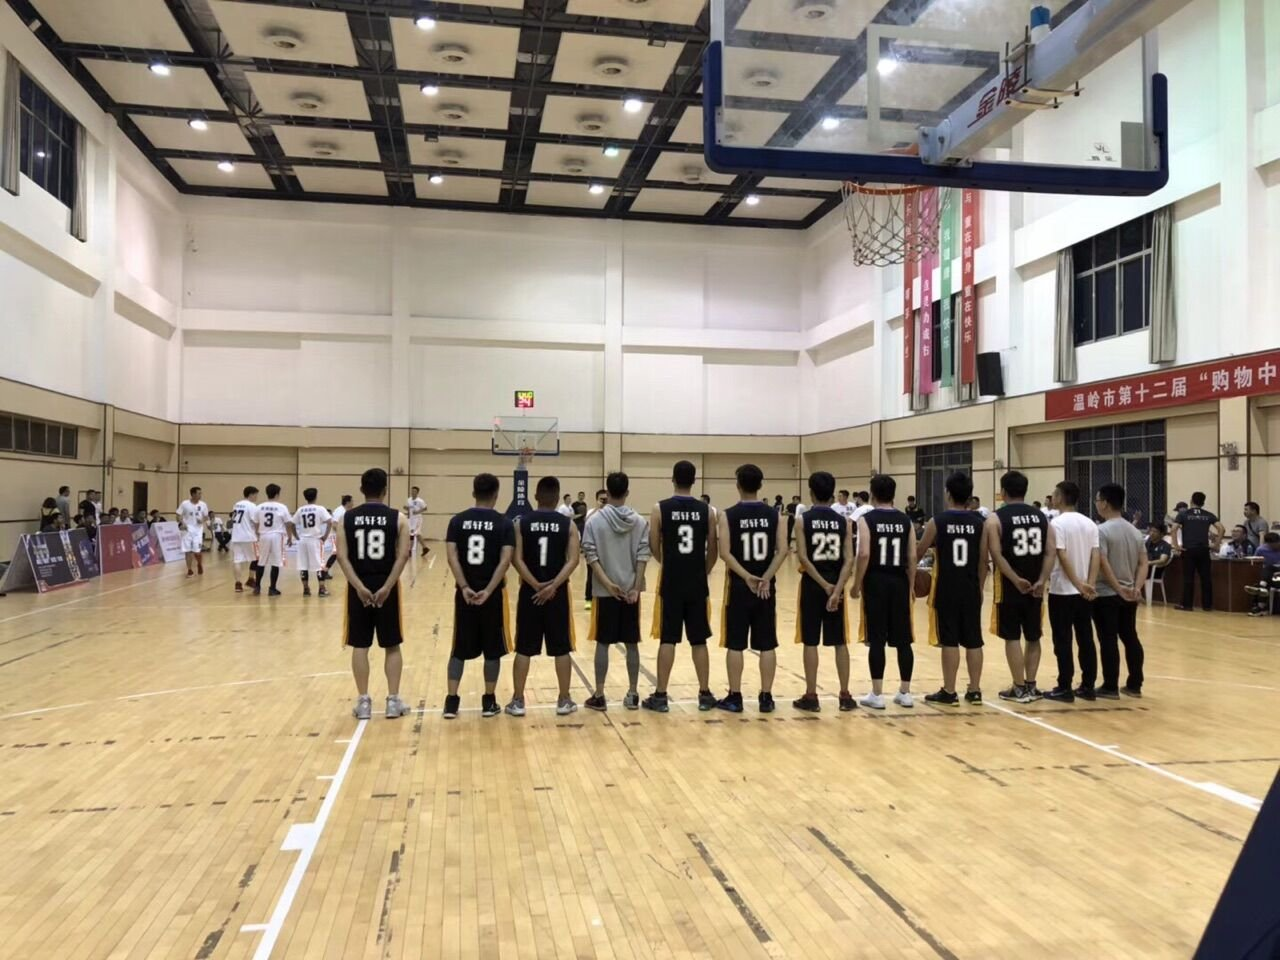 Purity basketball team plays in the basketball league match of Wenling